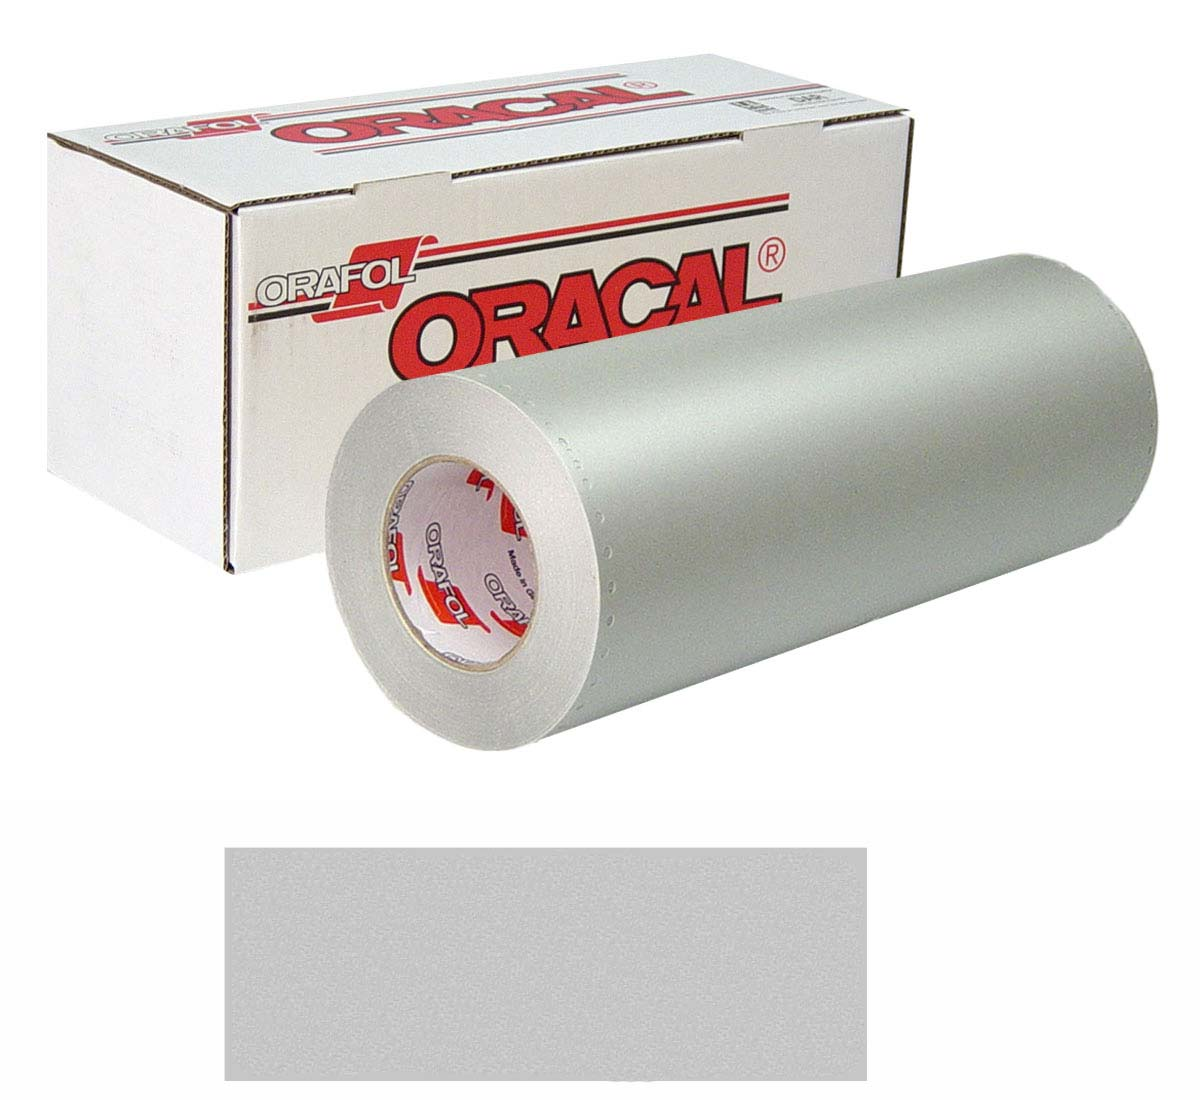 ORACAL 8510 Etched Unp 24in X 50yd 090 Slvr-F